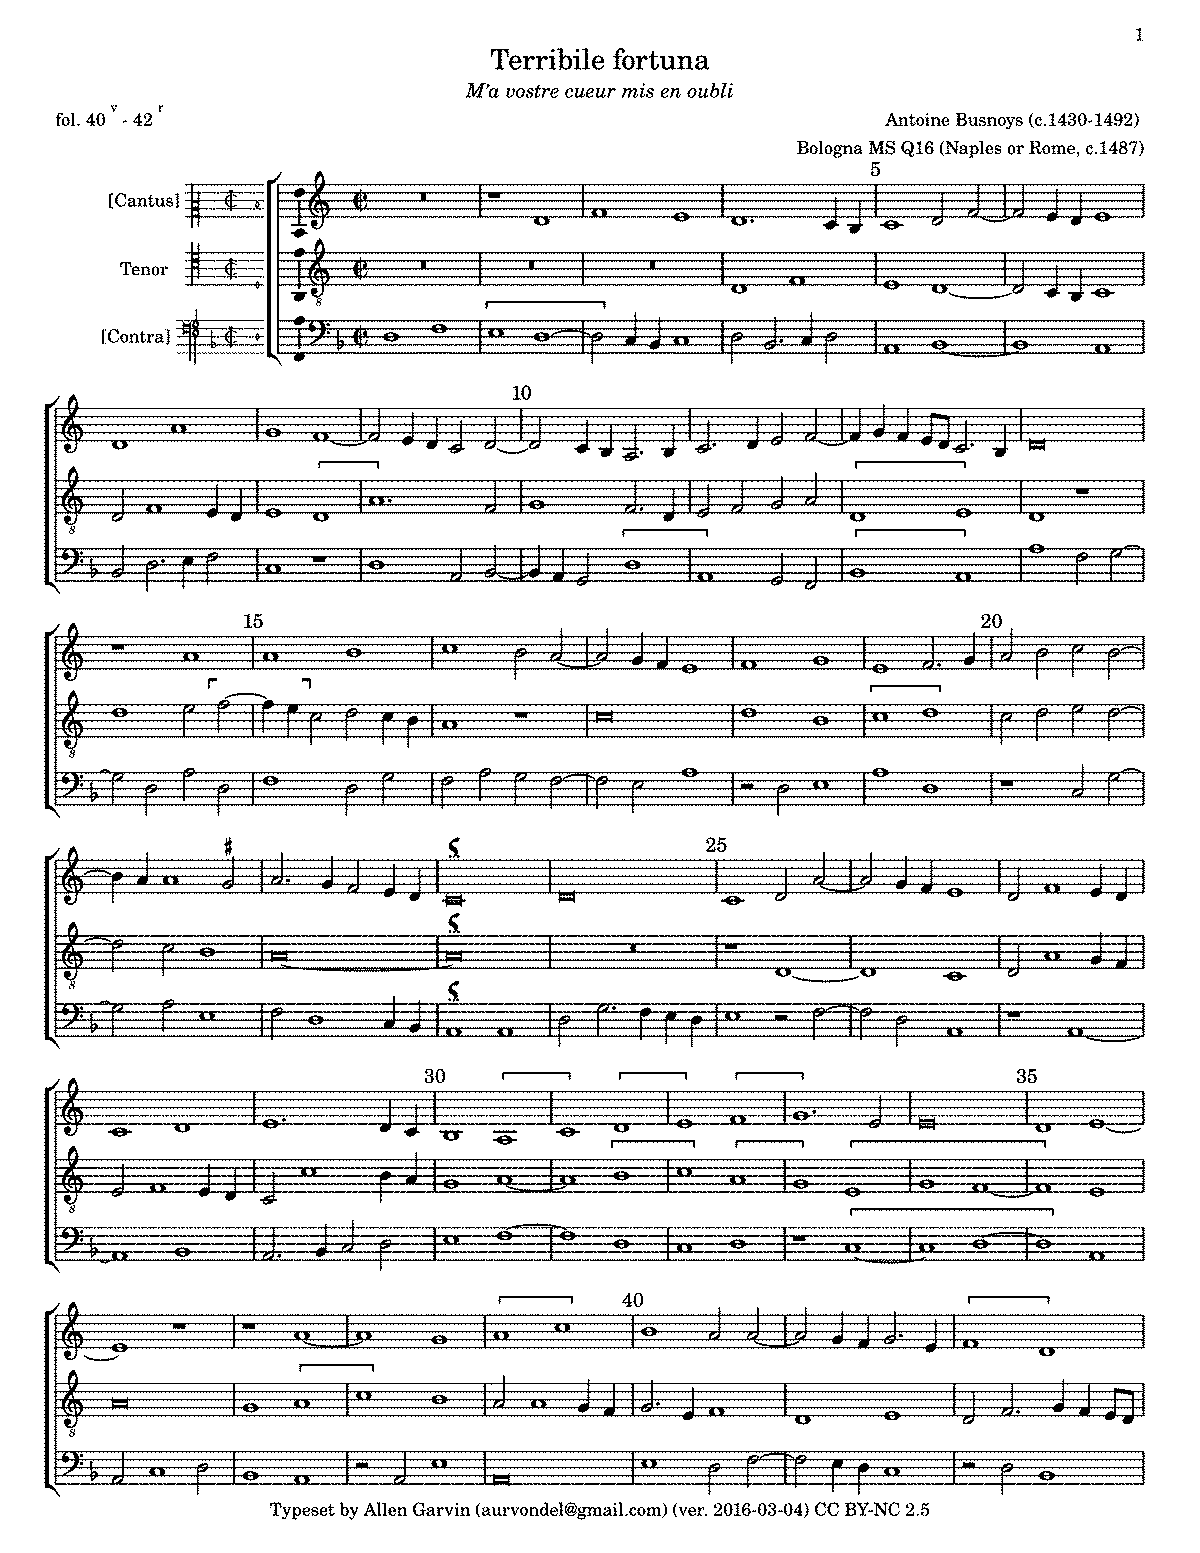 PMLP671187-33-terrible fortuna---0-score.pdf